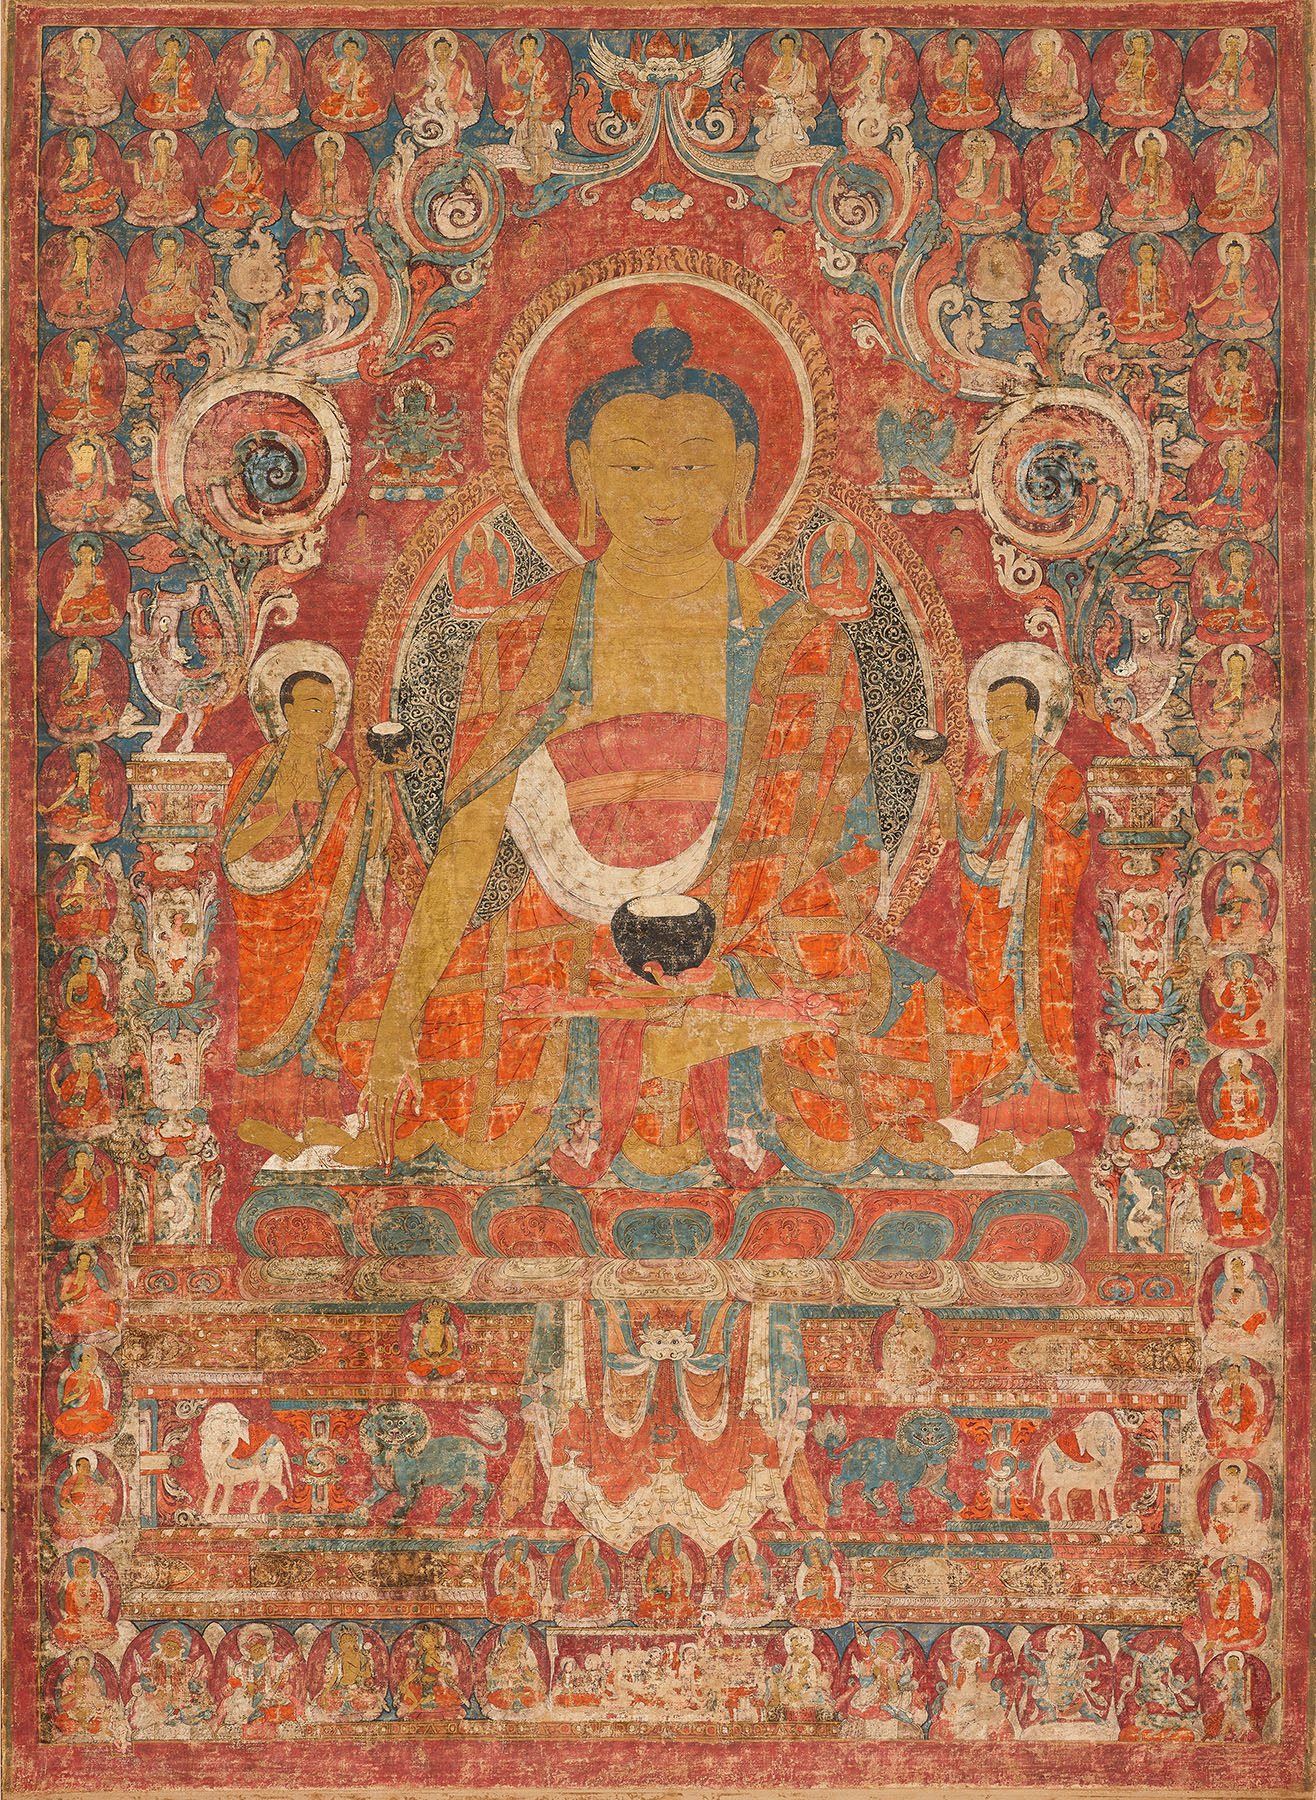 Western Tibet, Ngari Prefecture, Guge Kingdom, 15th century